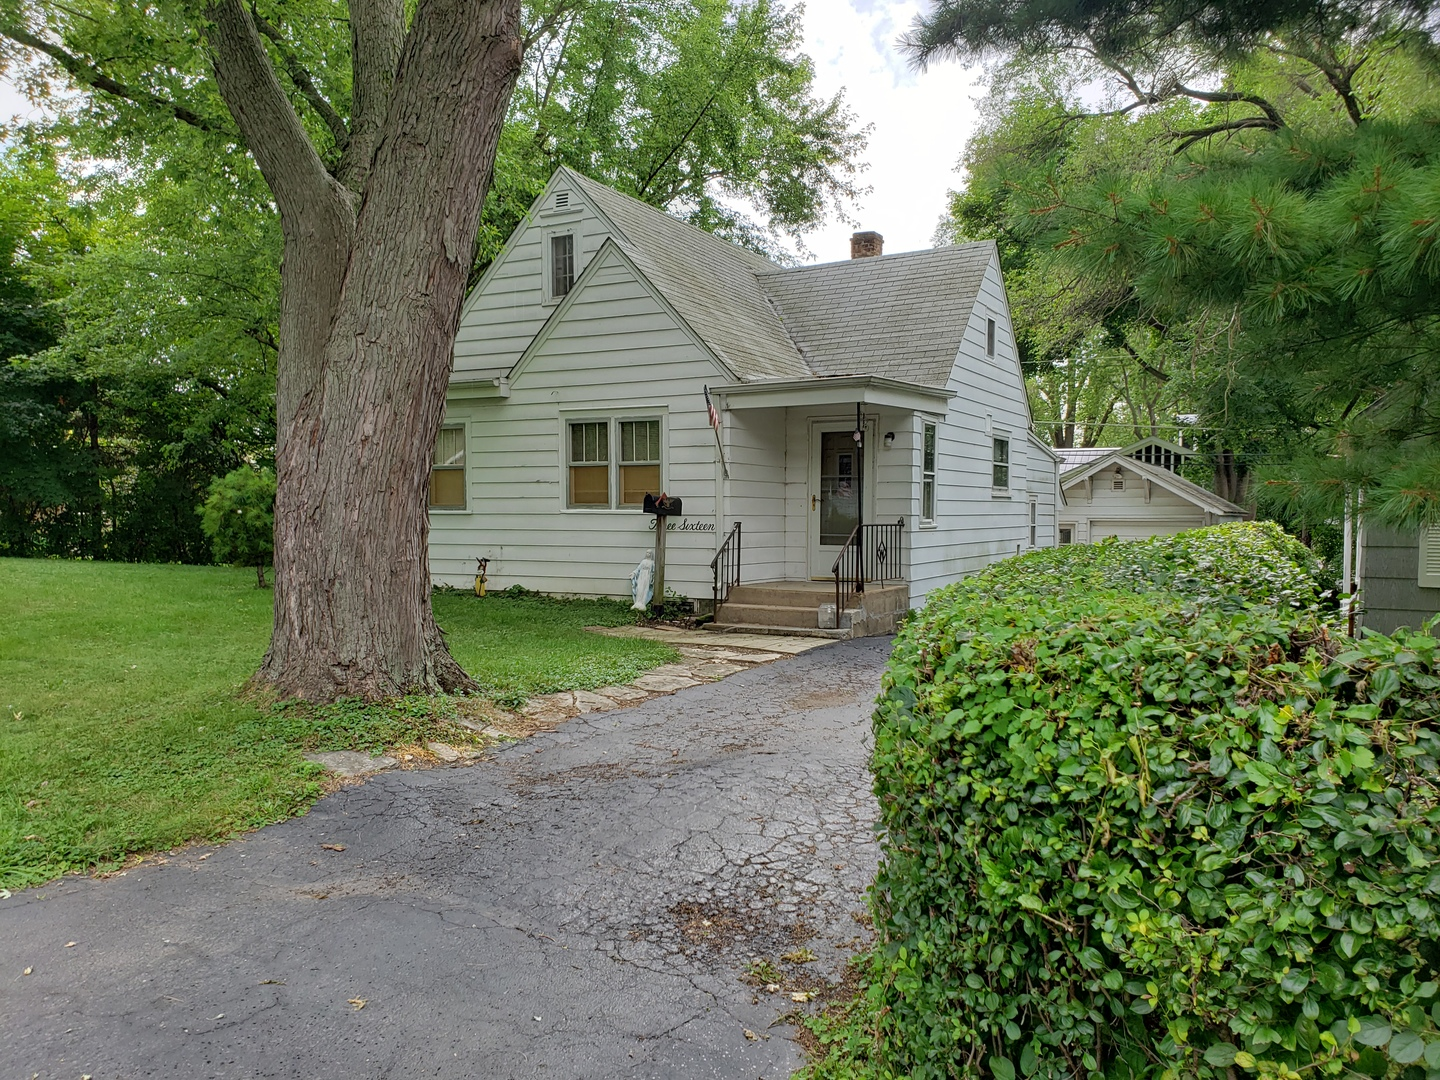 Quaint cape cod with long time owner is now ready to sell!  This cute home comes with a second buildable lot on a separate PIn.  No need to look for anything more affordable than this.  Owner is moving to warmer climates and wants to retire fully.  This home has everything one could need, easy step kitchen laundry, garage, extra space or room for family or guest, and even tons of yard space for the pets if need be.  Priced to sell quickly so come get it while it's hot!